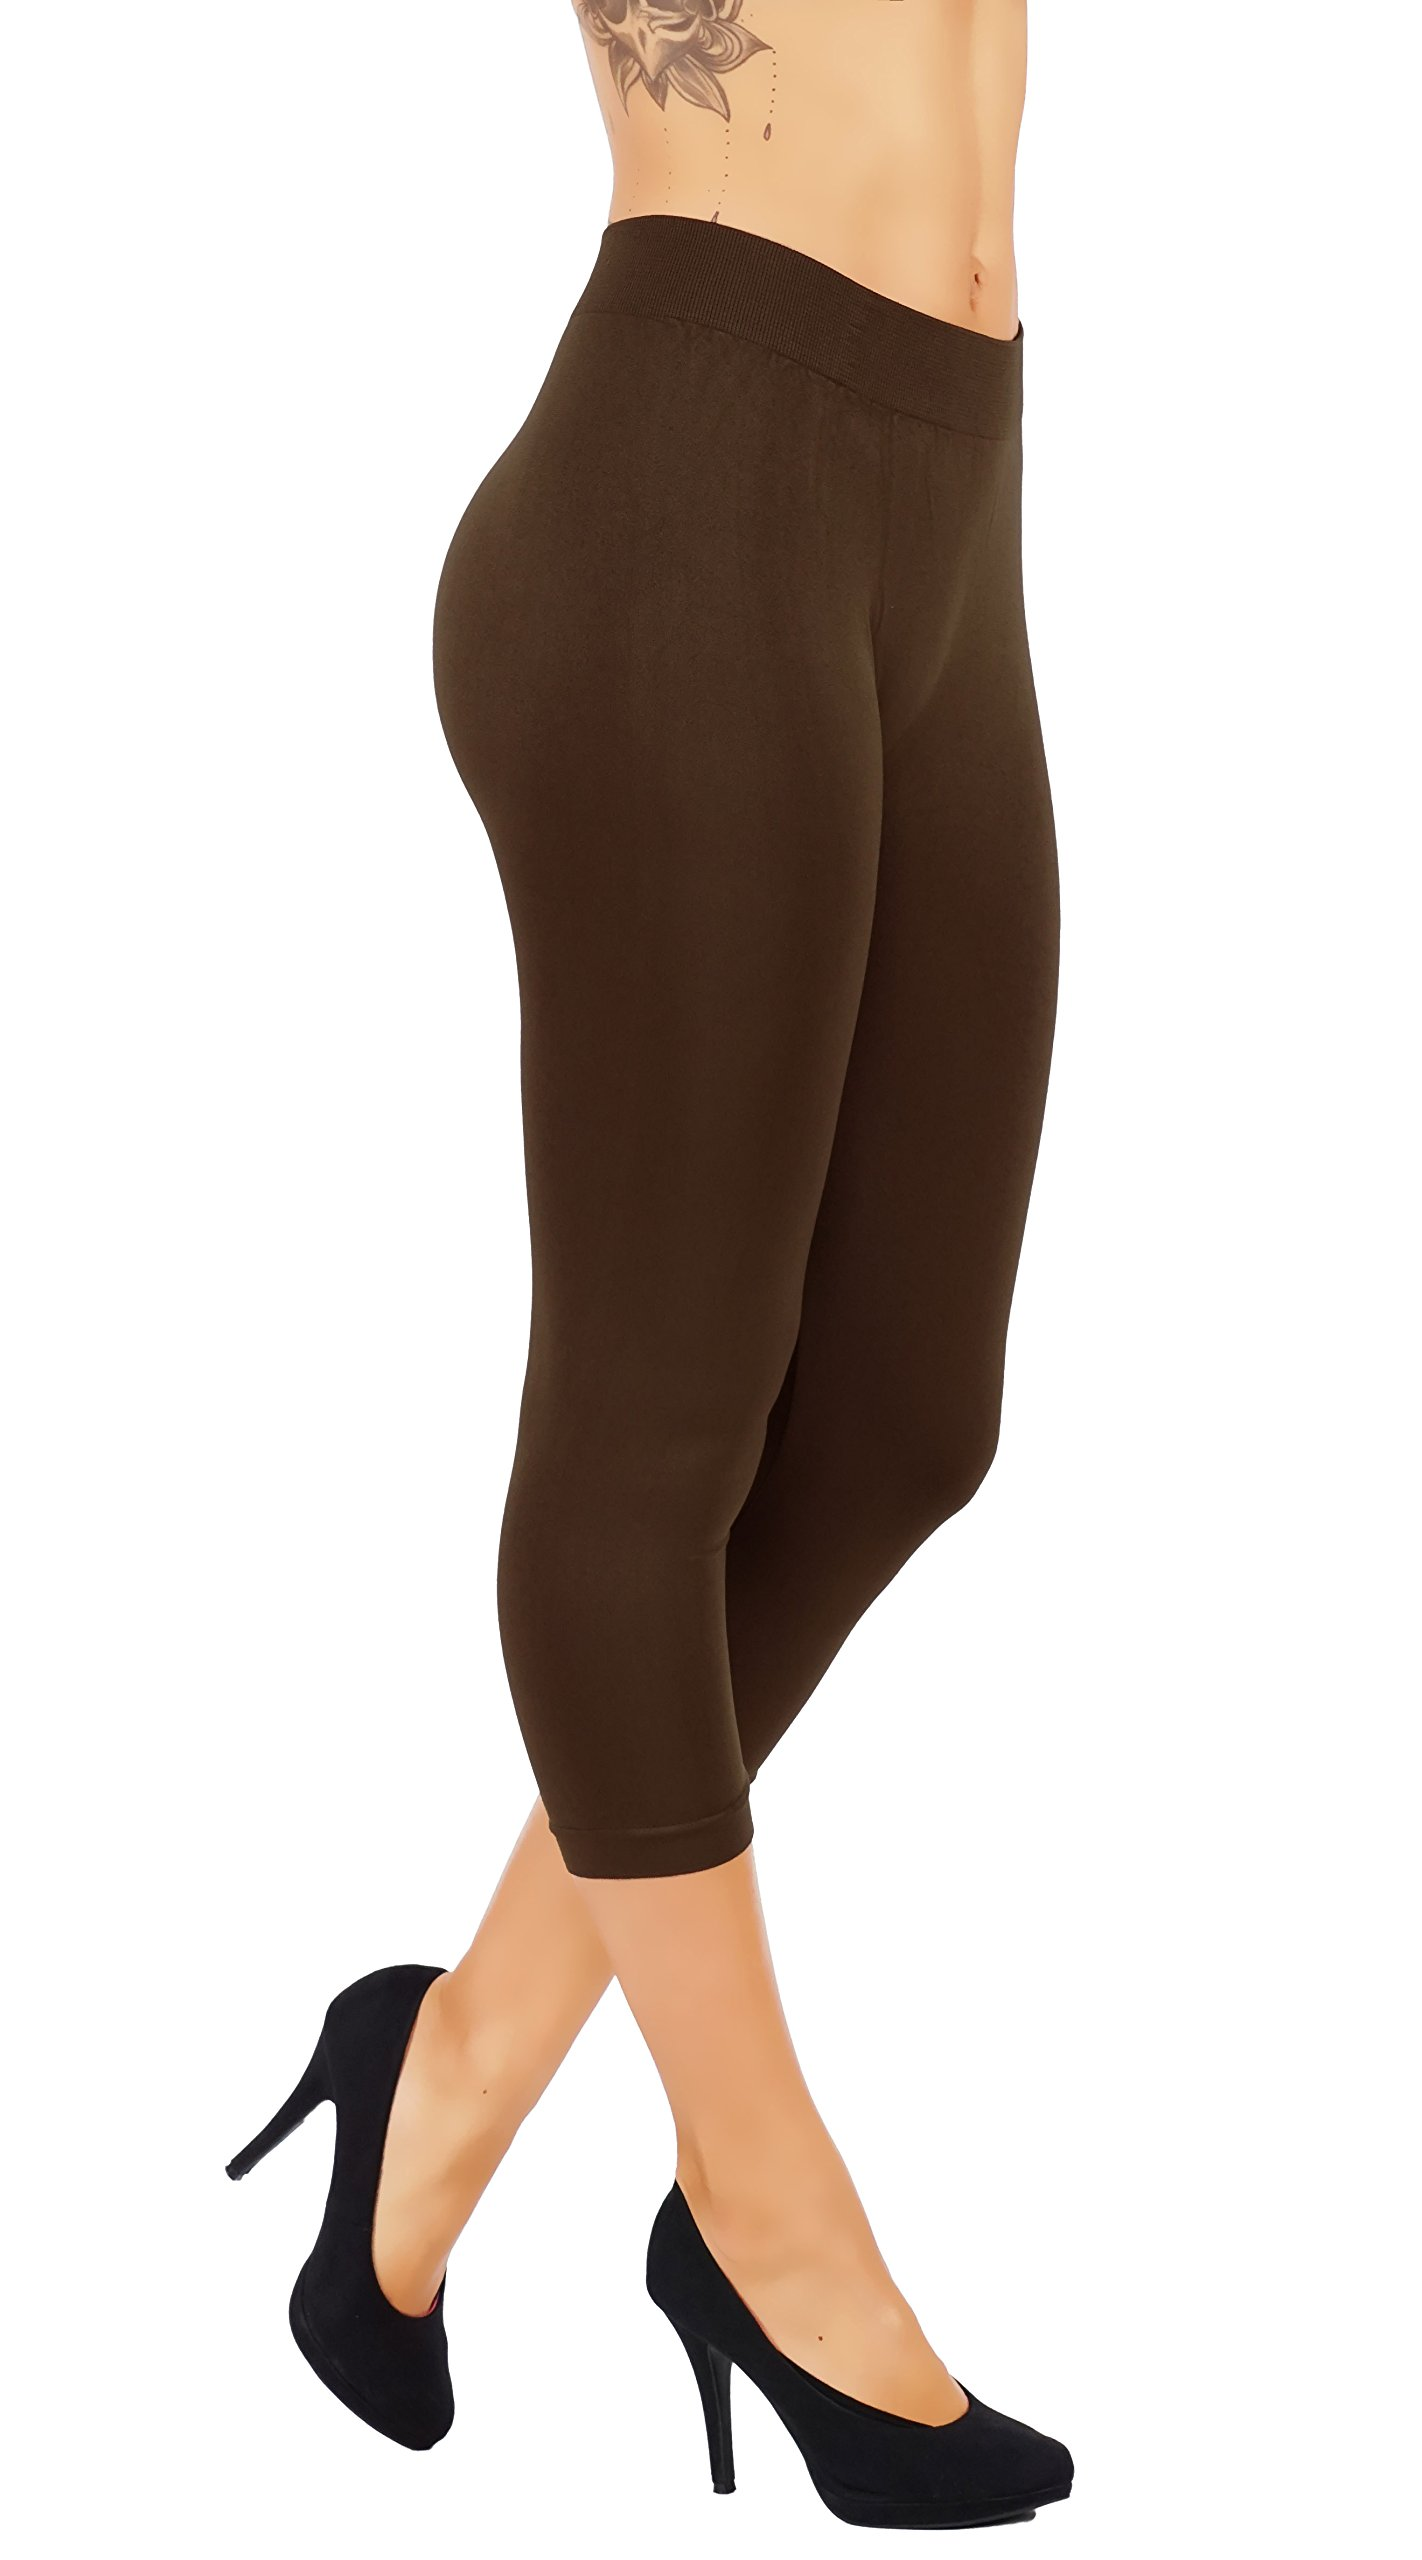 5StarsLine Casual Pants Wide Elastic Waistband Buttery Soft Leggings Light Weight Variety of Colors S-XL (S/M USA 2-8, 5S82-6CP-BRW)